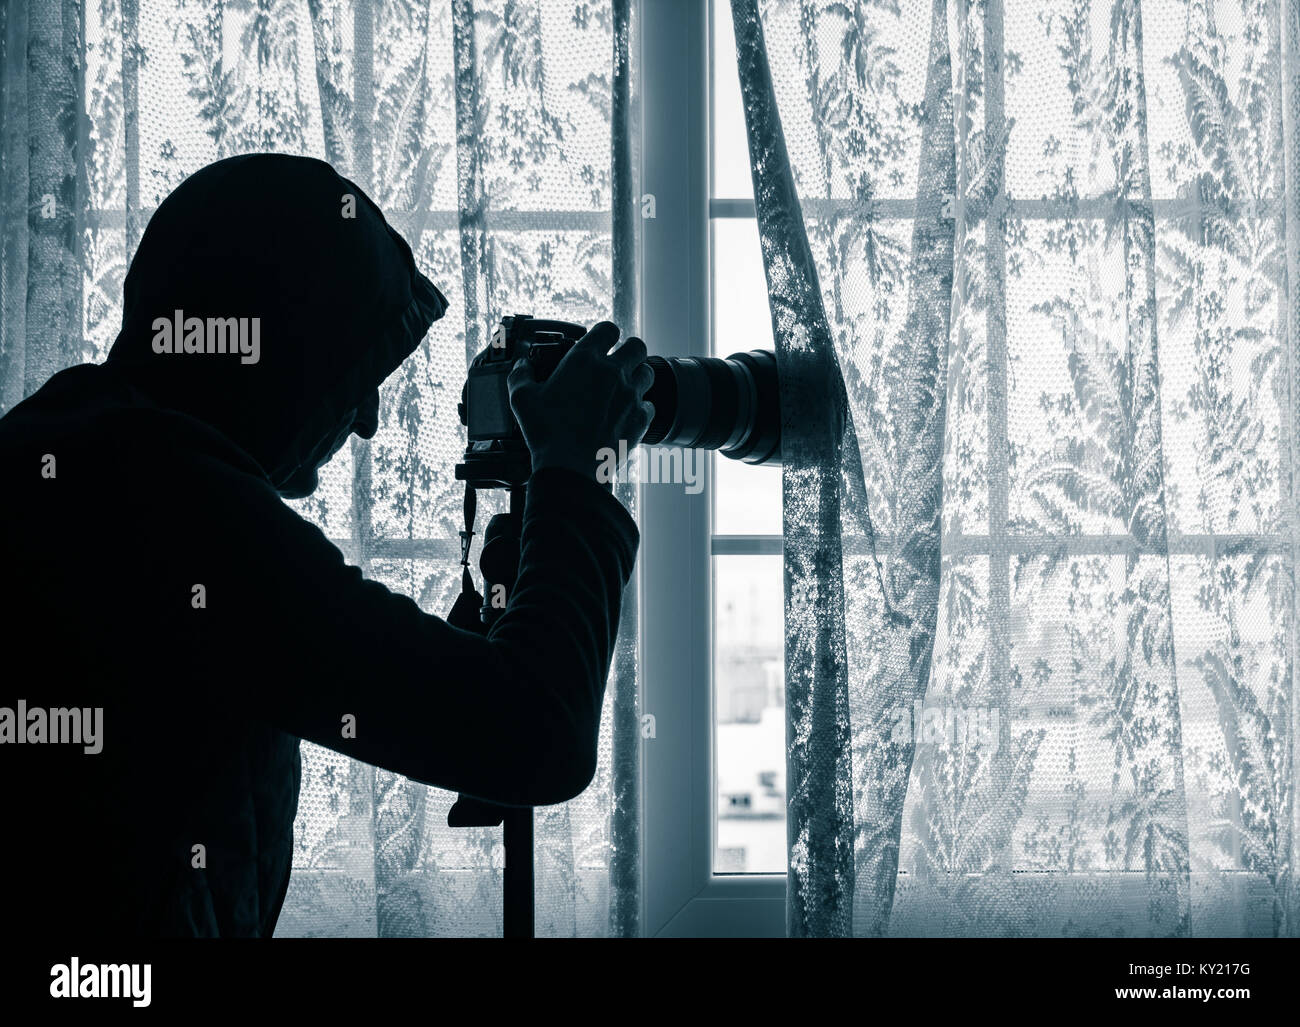 Man wearing hoodie at window looking at LCD screen of camera which has telephoto lens attached. Concept image for Stock Photo